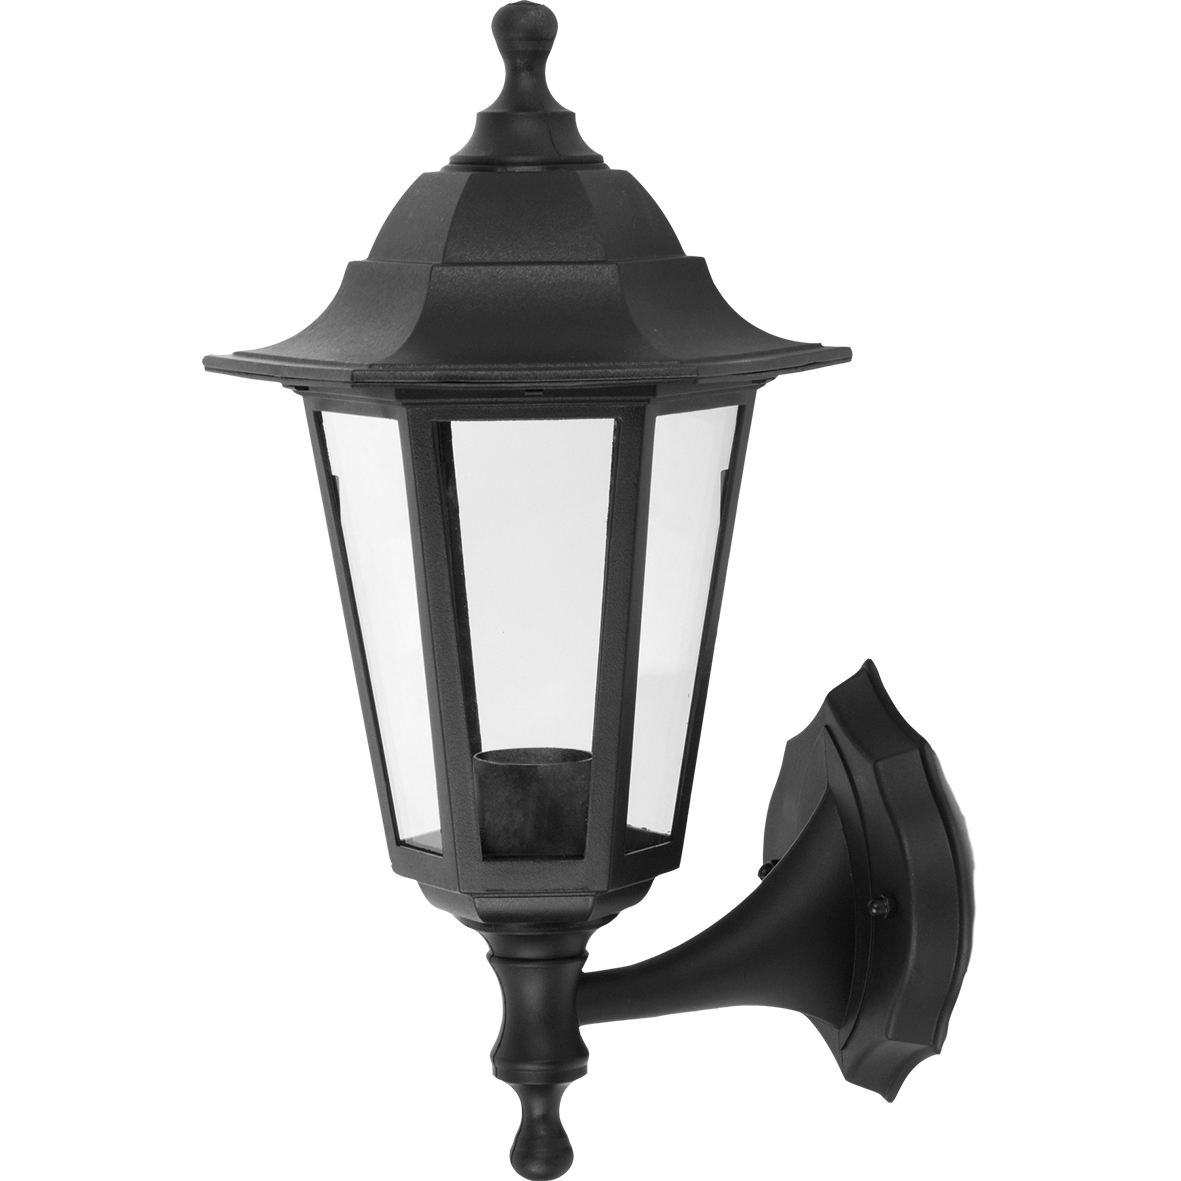 GLASS SHADE E26 E27 OUTSIDE DECORATIVE GARDEN WALL MOUNTED SCONCE FIXTURES WATERPROOF OUTDOOR WALL LIGHTING